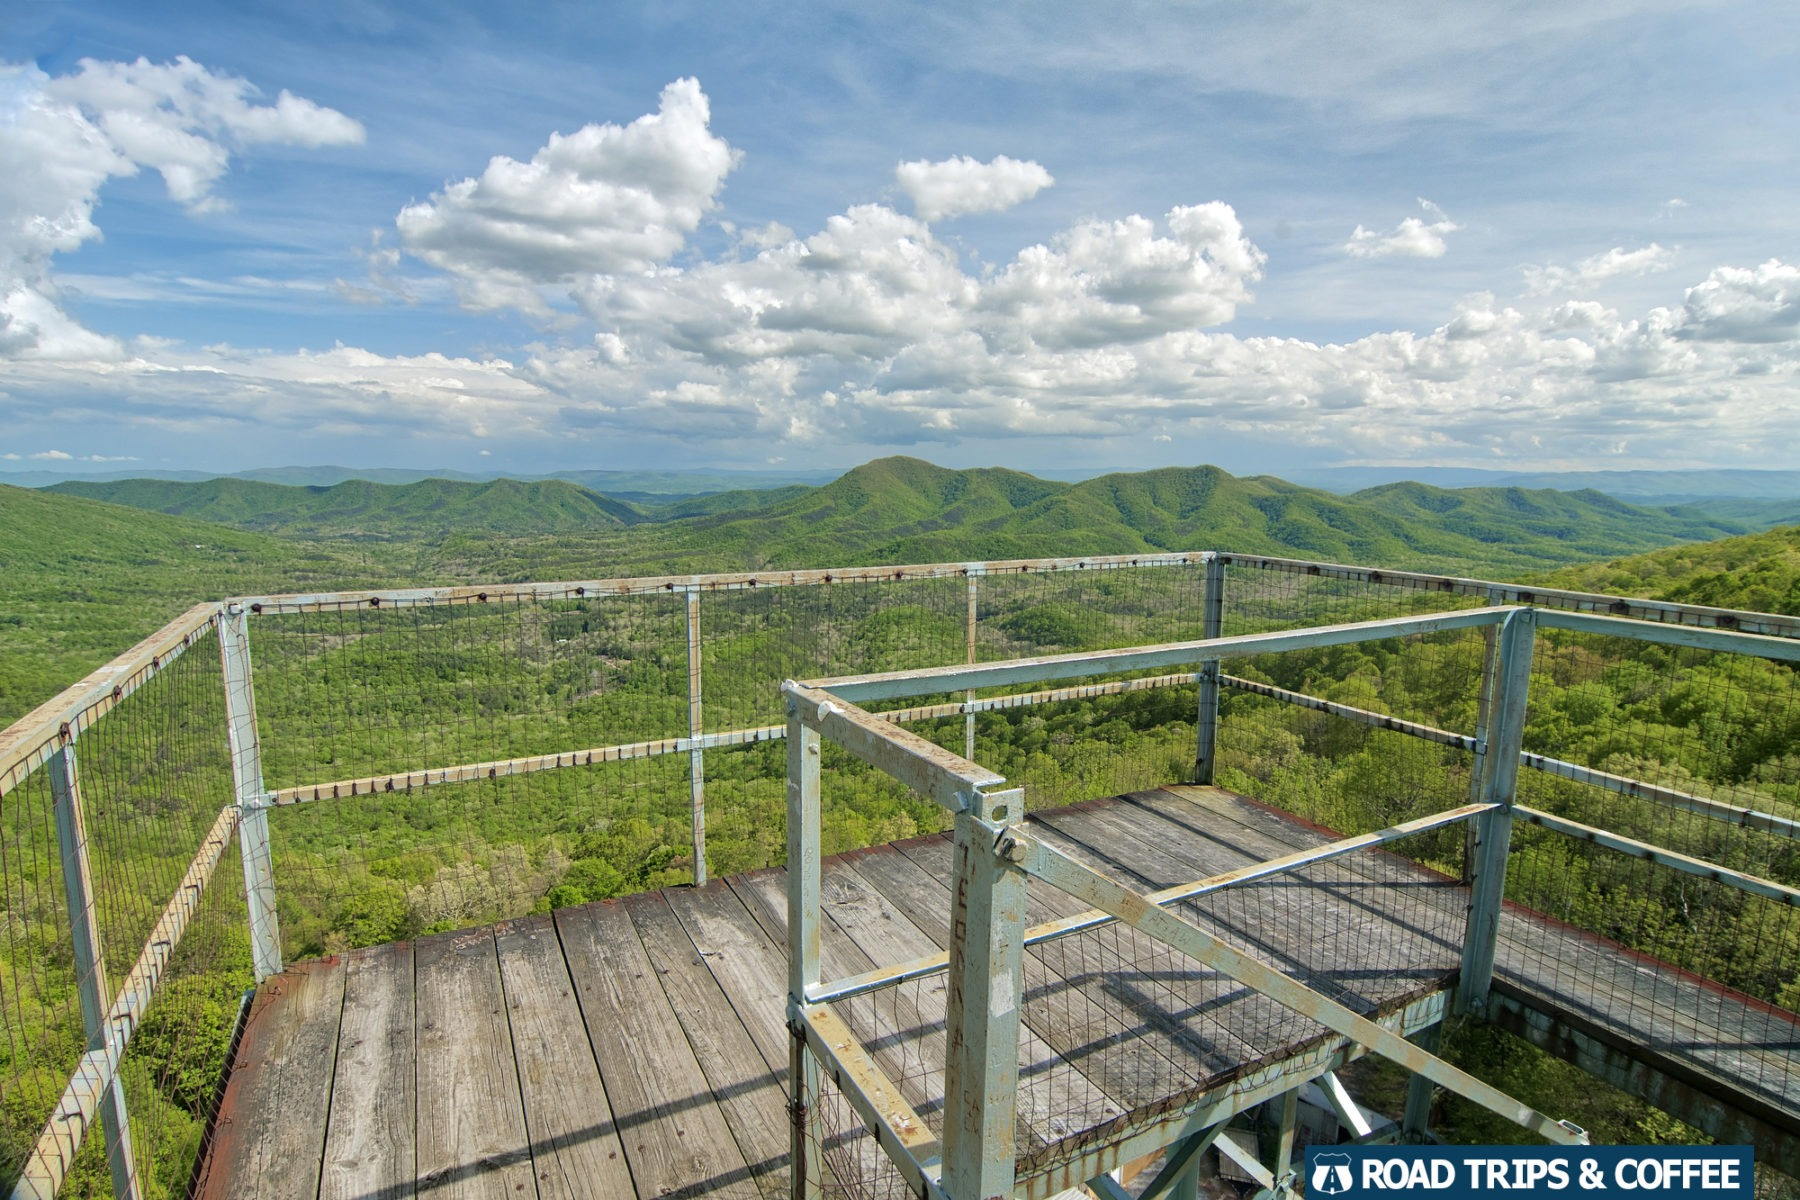 A wooden platform at the top of the steel frame Big Walker Lookout with a view of partly cloudy skies over a lush green mountain landscape in Wytheville, Virginia